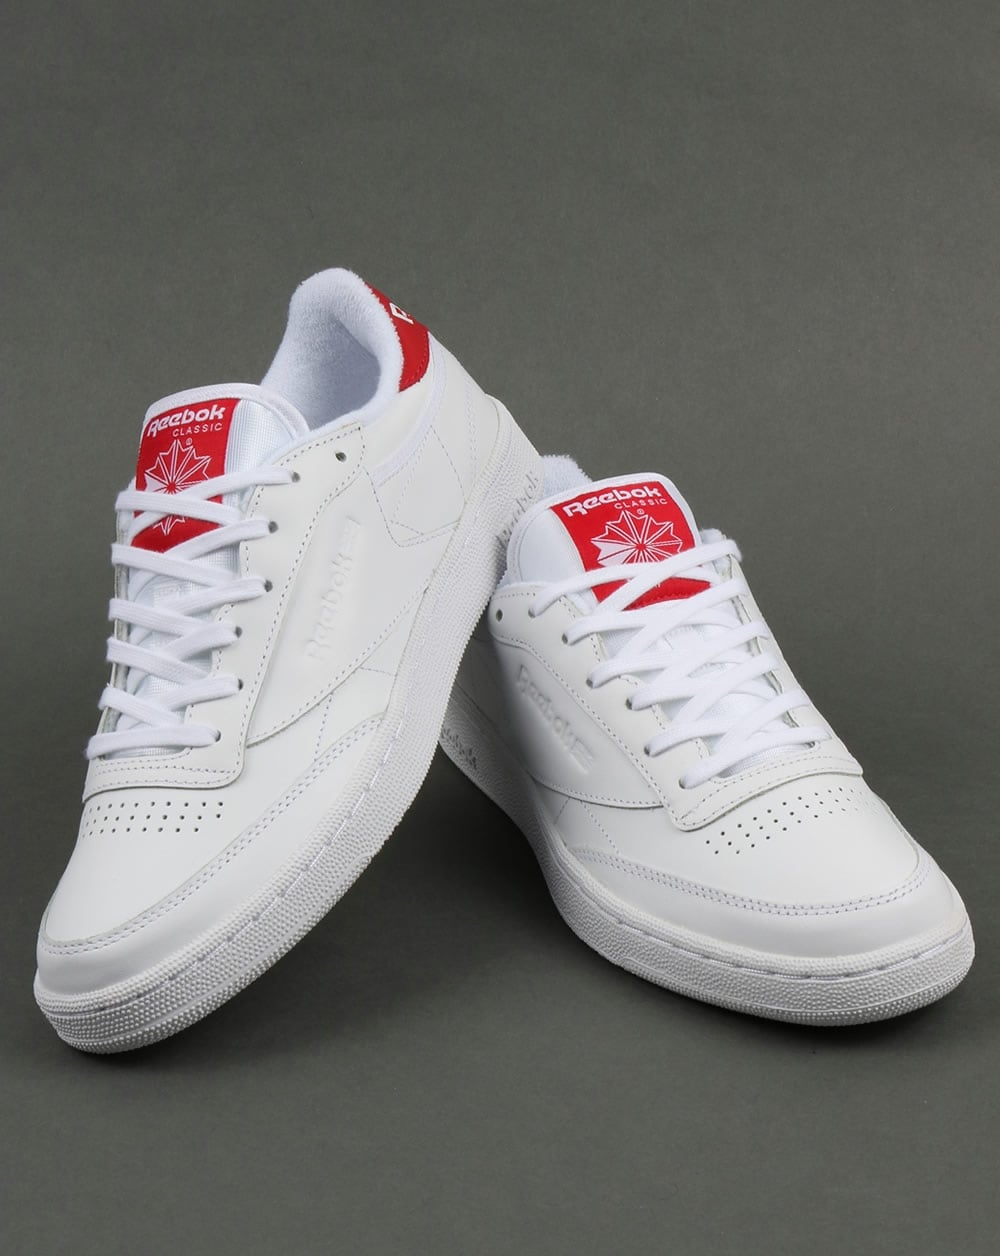 829b4fee9b4c8 Reebok Club C 85 Retro Trainers White Red